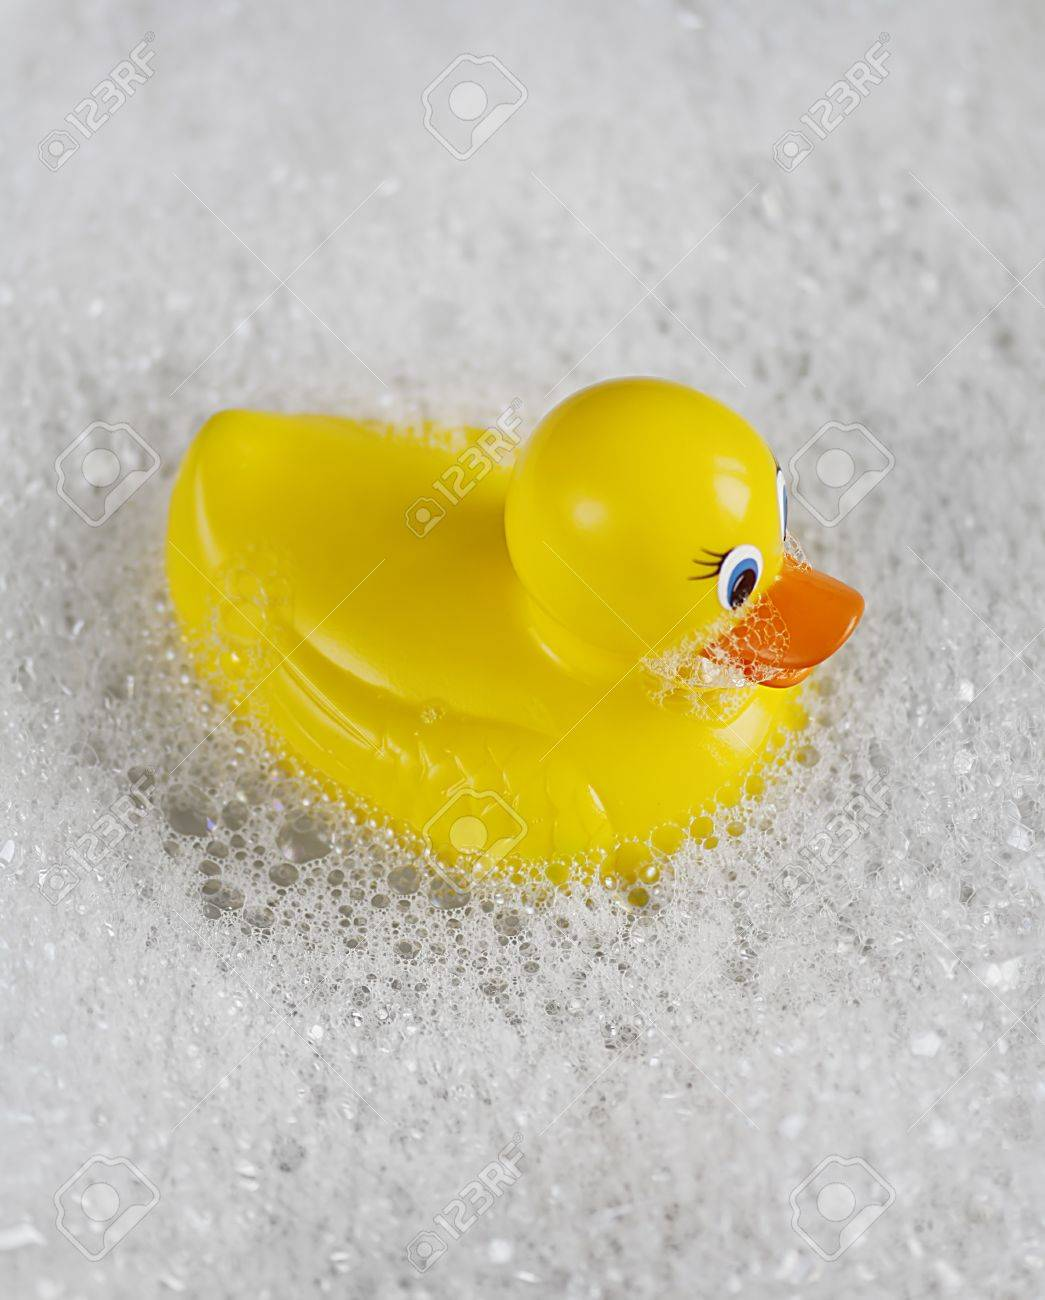 Bathtime fun with a yellow rubber ducky in a bathtub full of water and bubbles. Stock Photo - 9450308